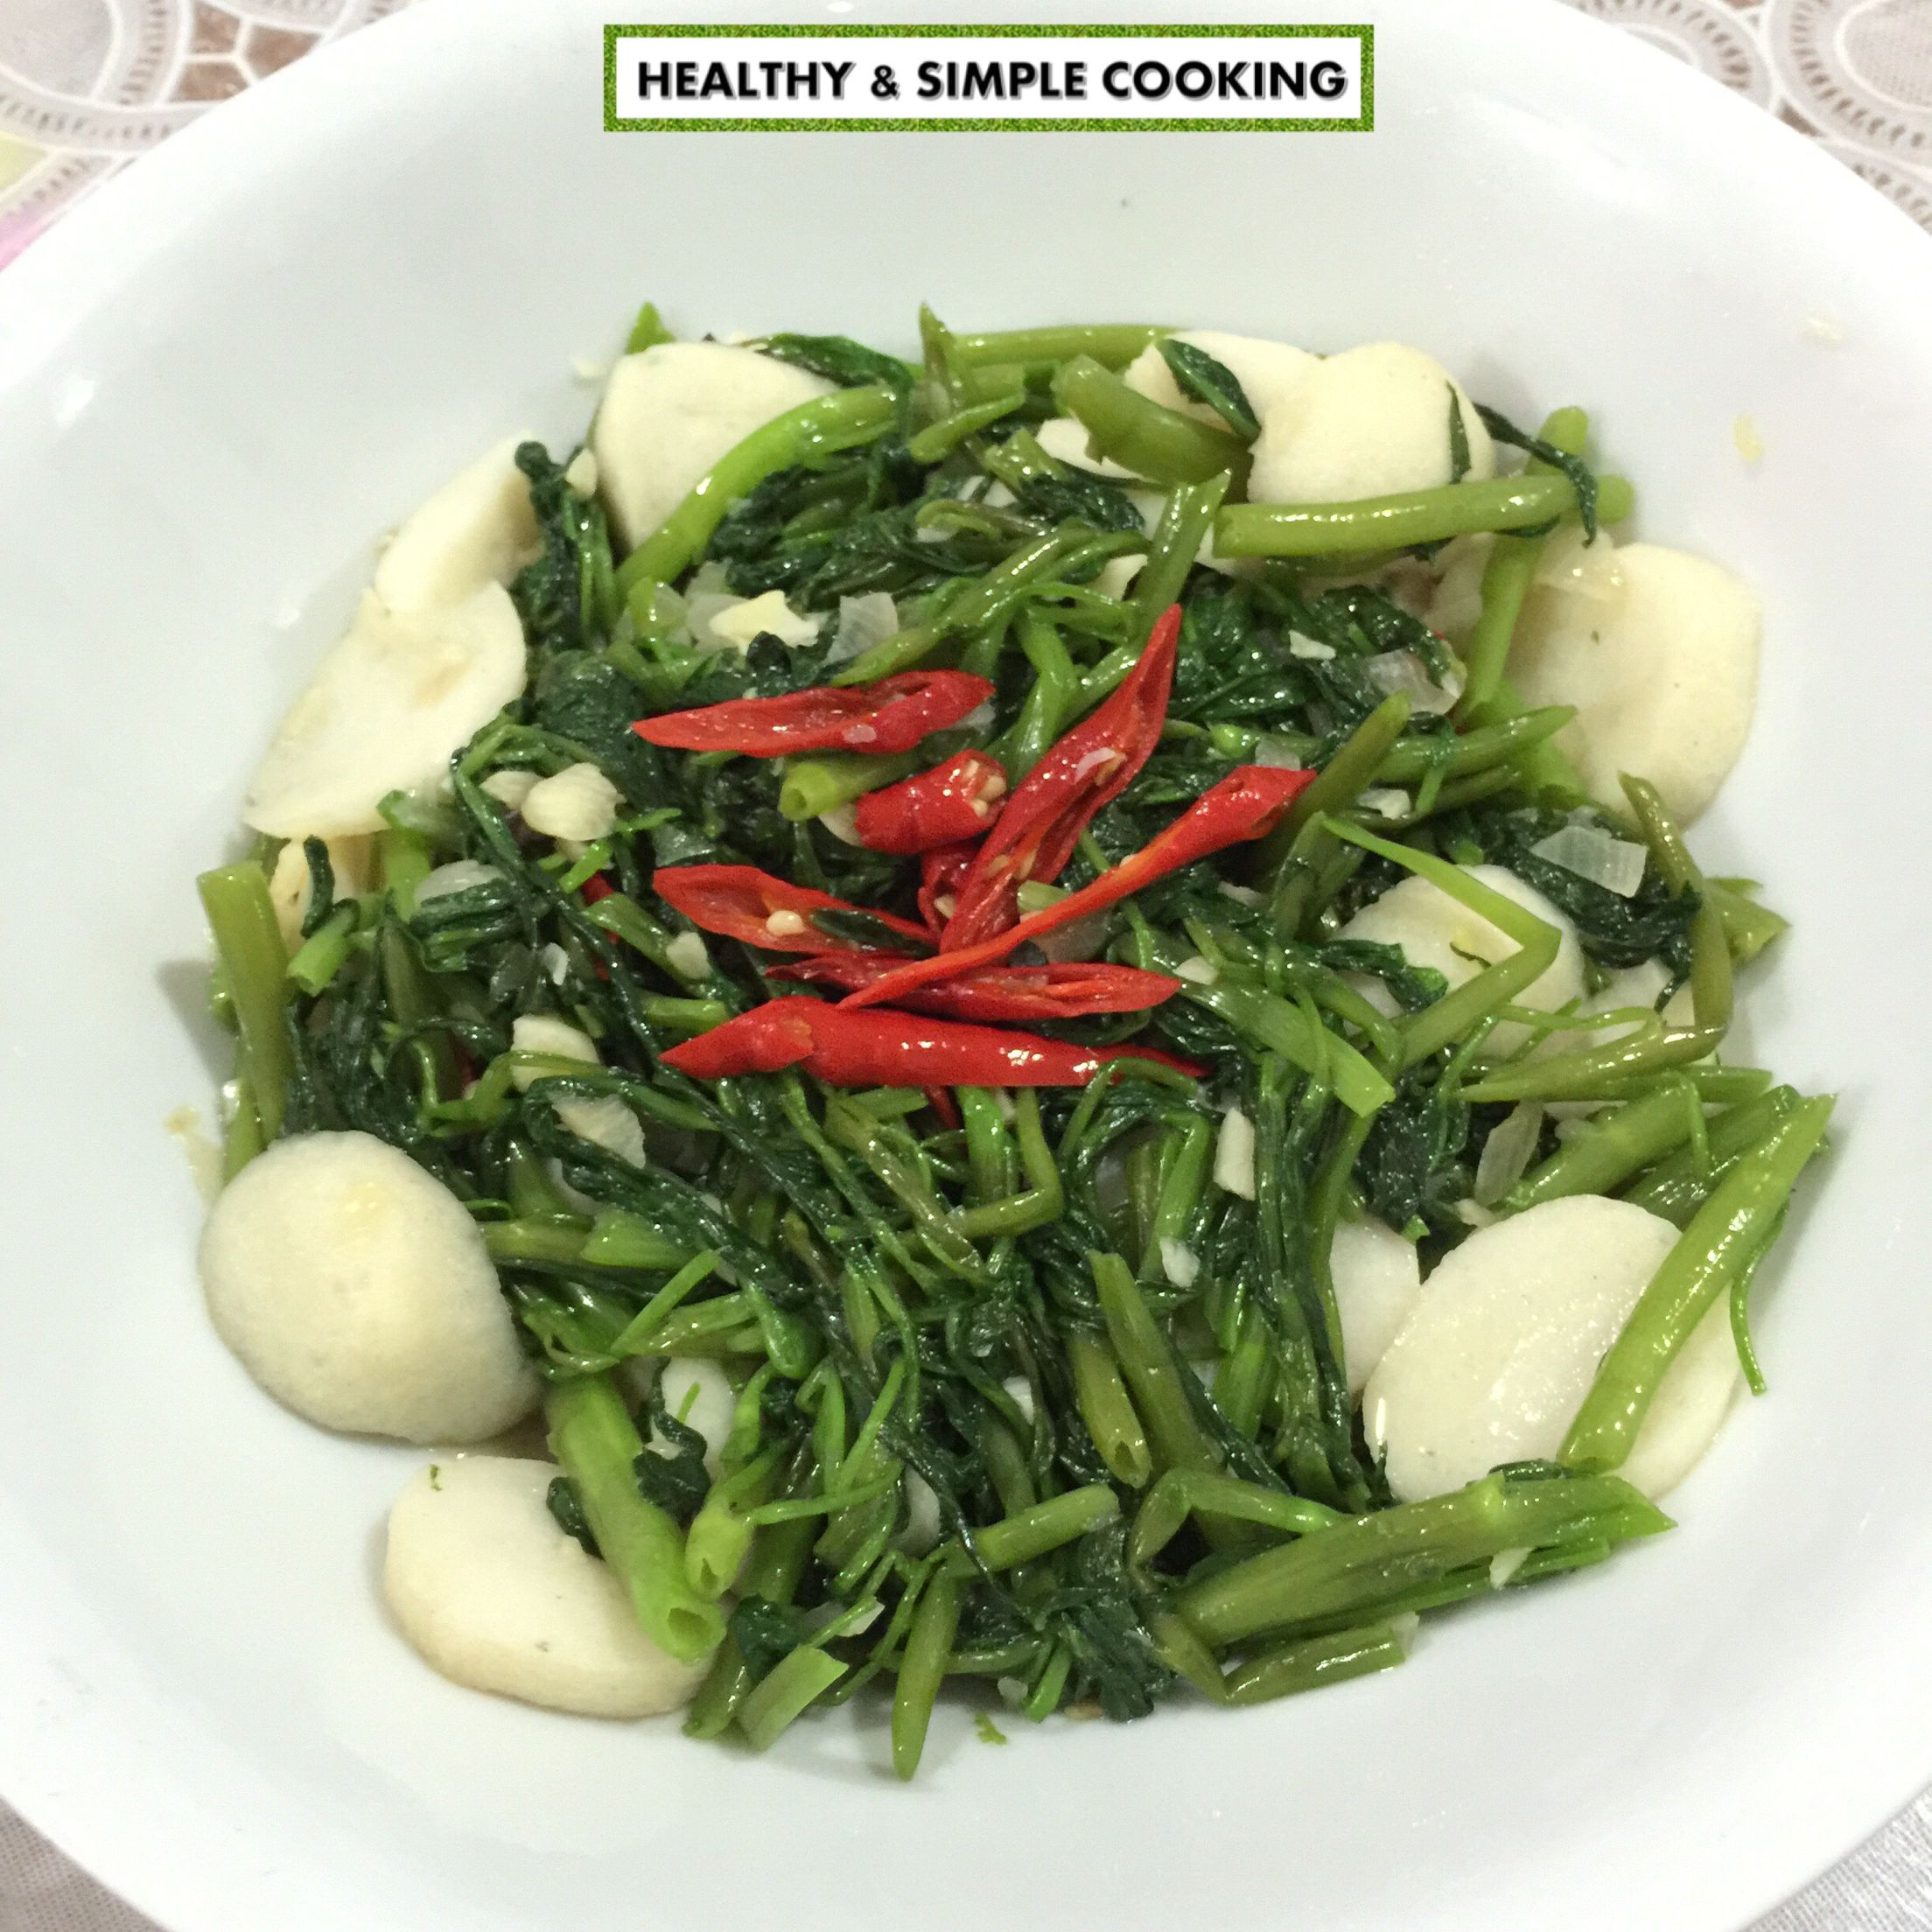 Sautéed Water Spinach With Fishball Tumis Kangkung Bakso Ikan Follow My Instagram Healthysimplecooking For Recipe Tumis Bakso Kangkung